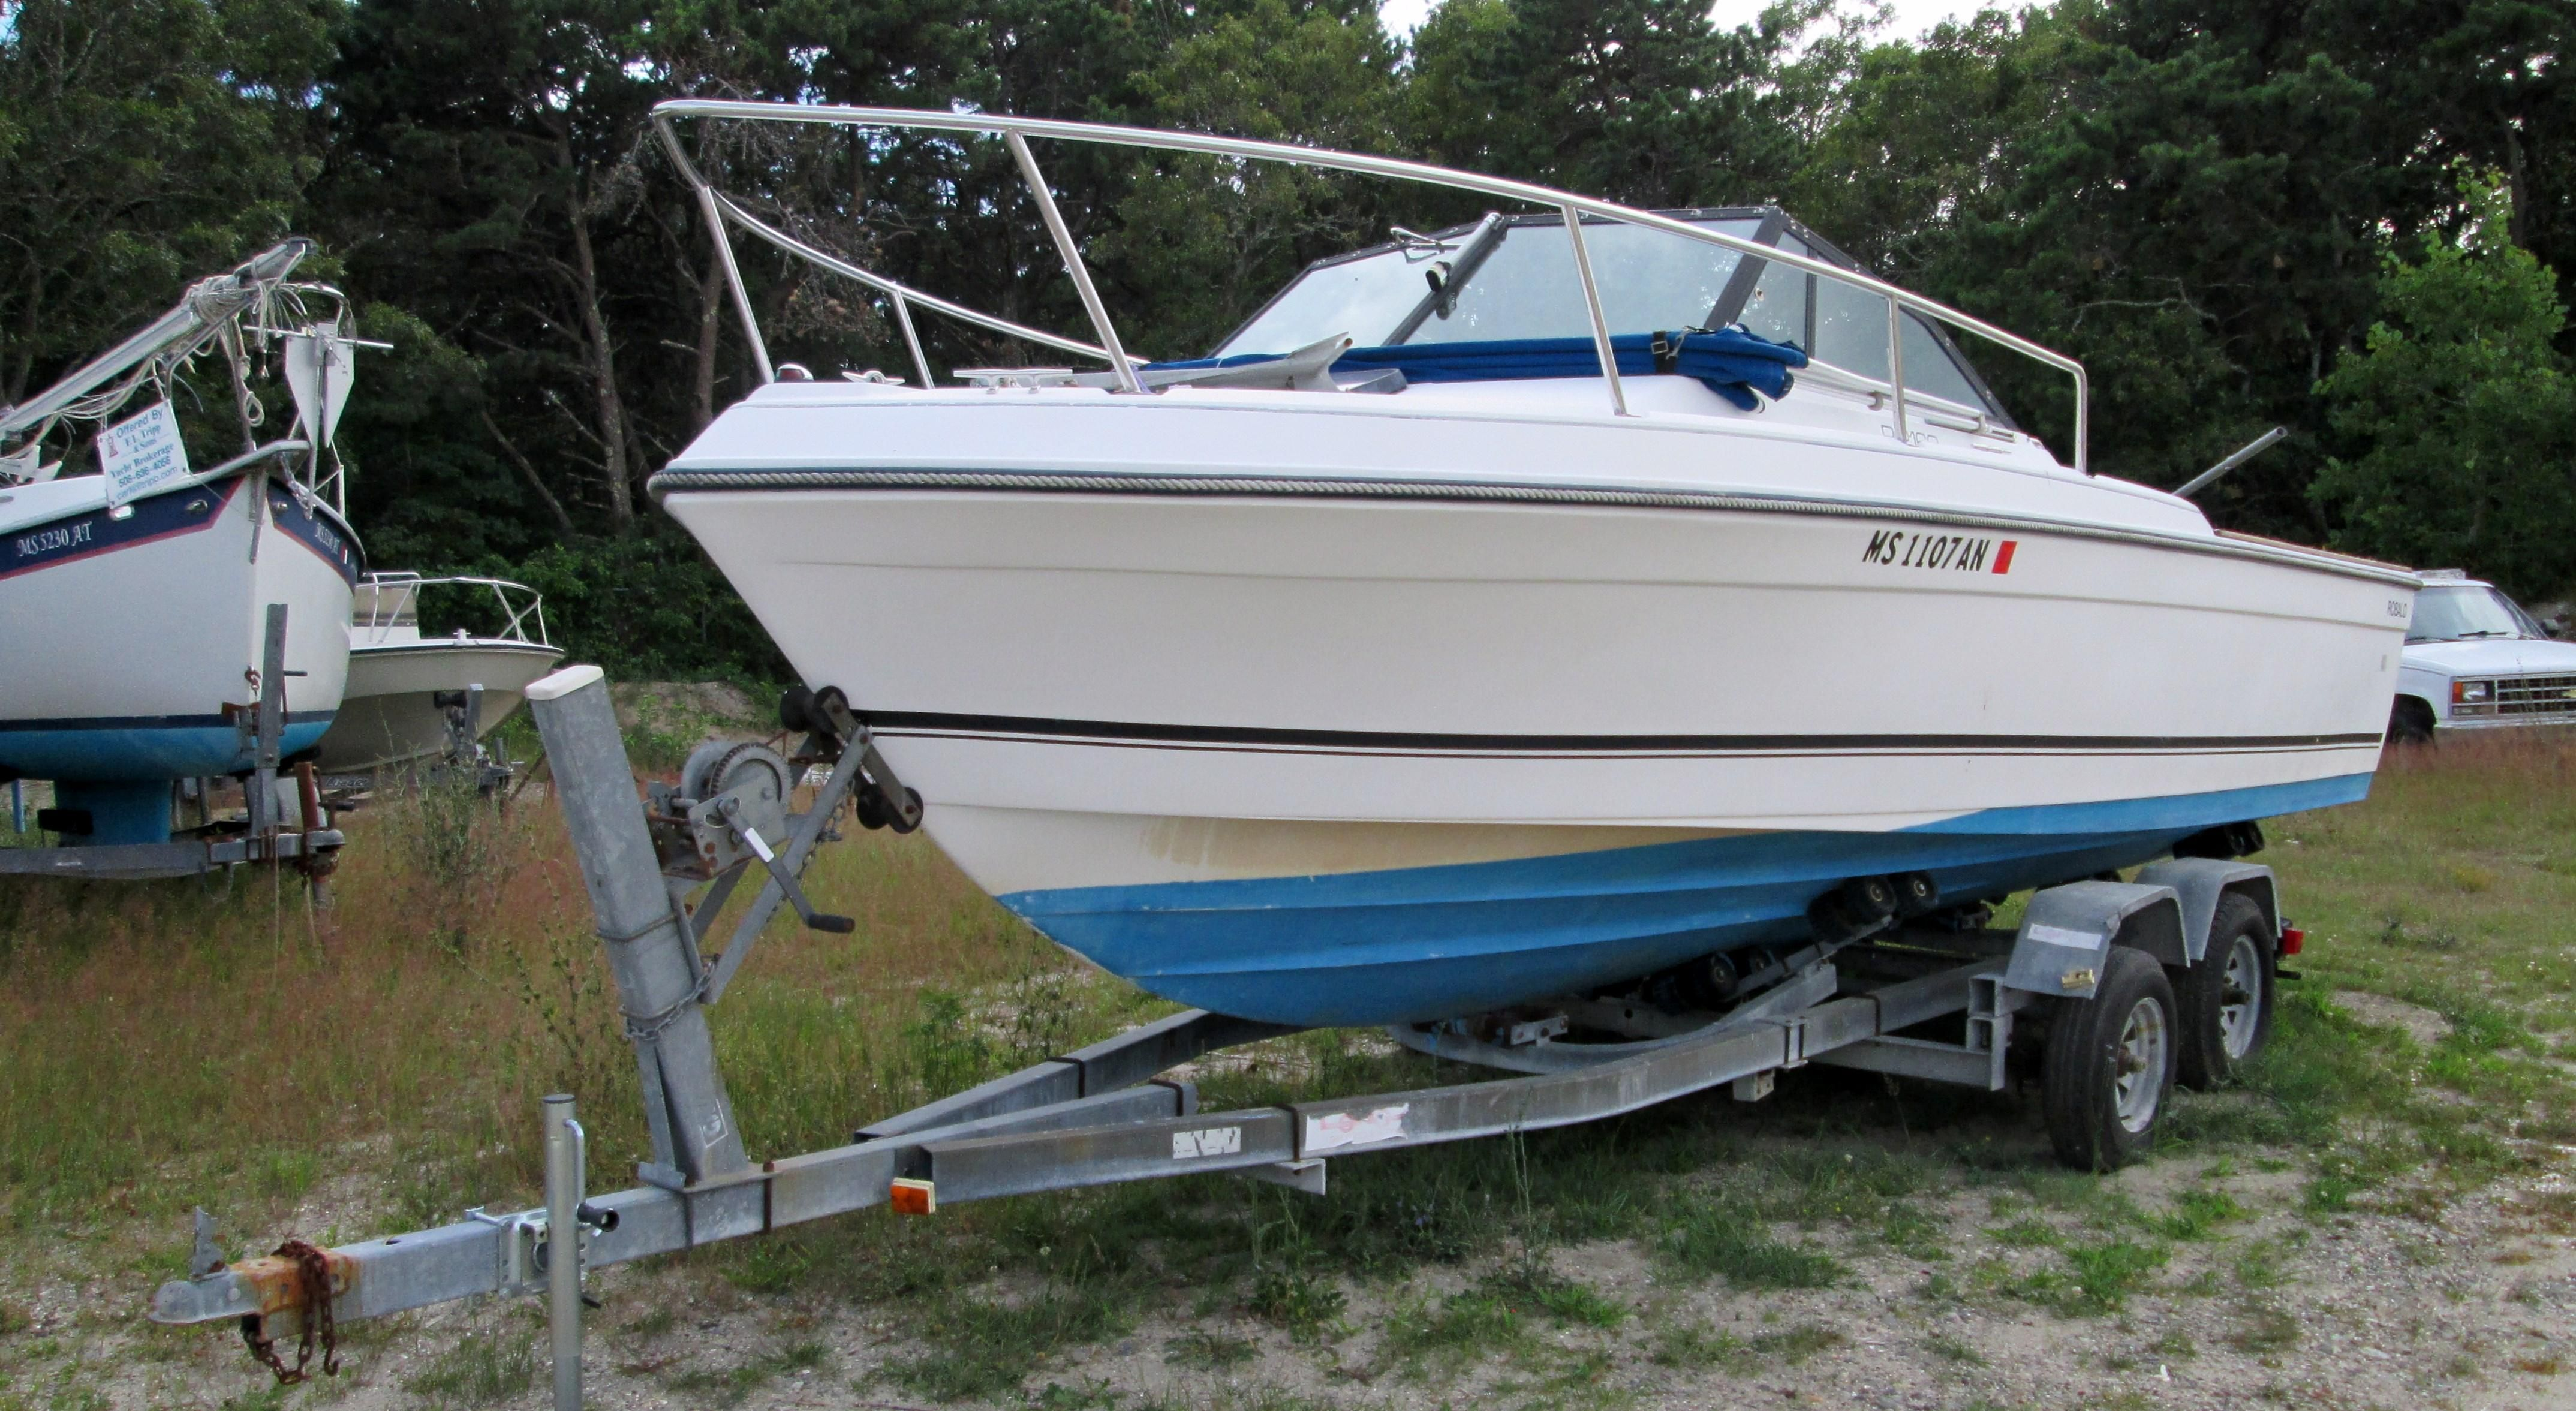 1986 robalo 2160 cuddy cabin power boat for sale www for Robalo fish in english